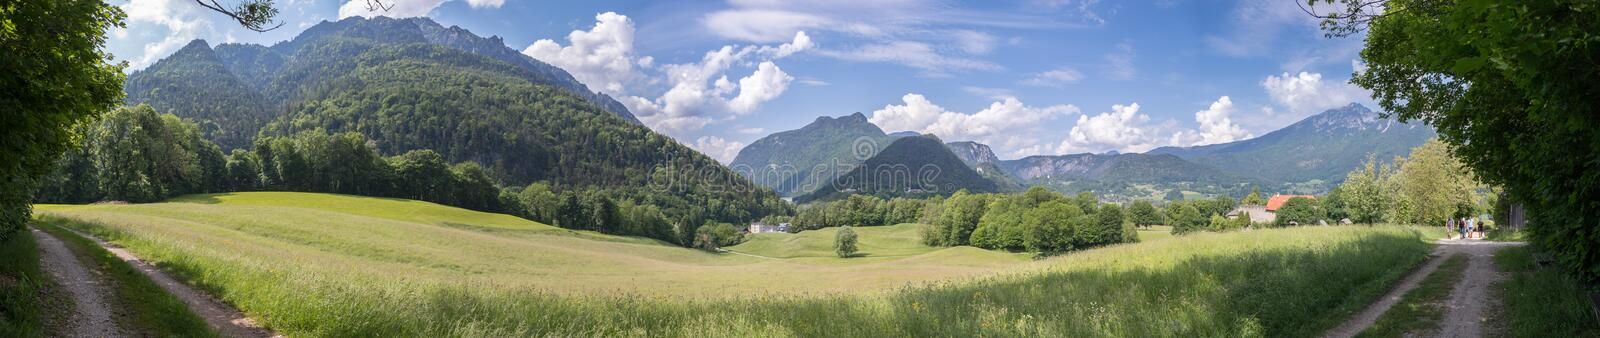 Panoramic idyll: Grass and meadow, mountains and blue sky. Bad Reichenhall, Bavaria, Germany royalty free stock image